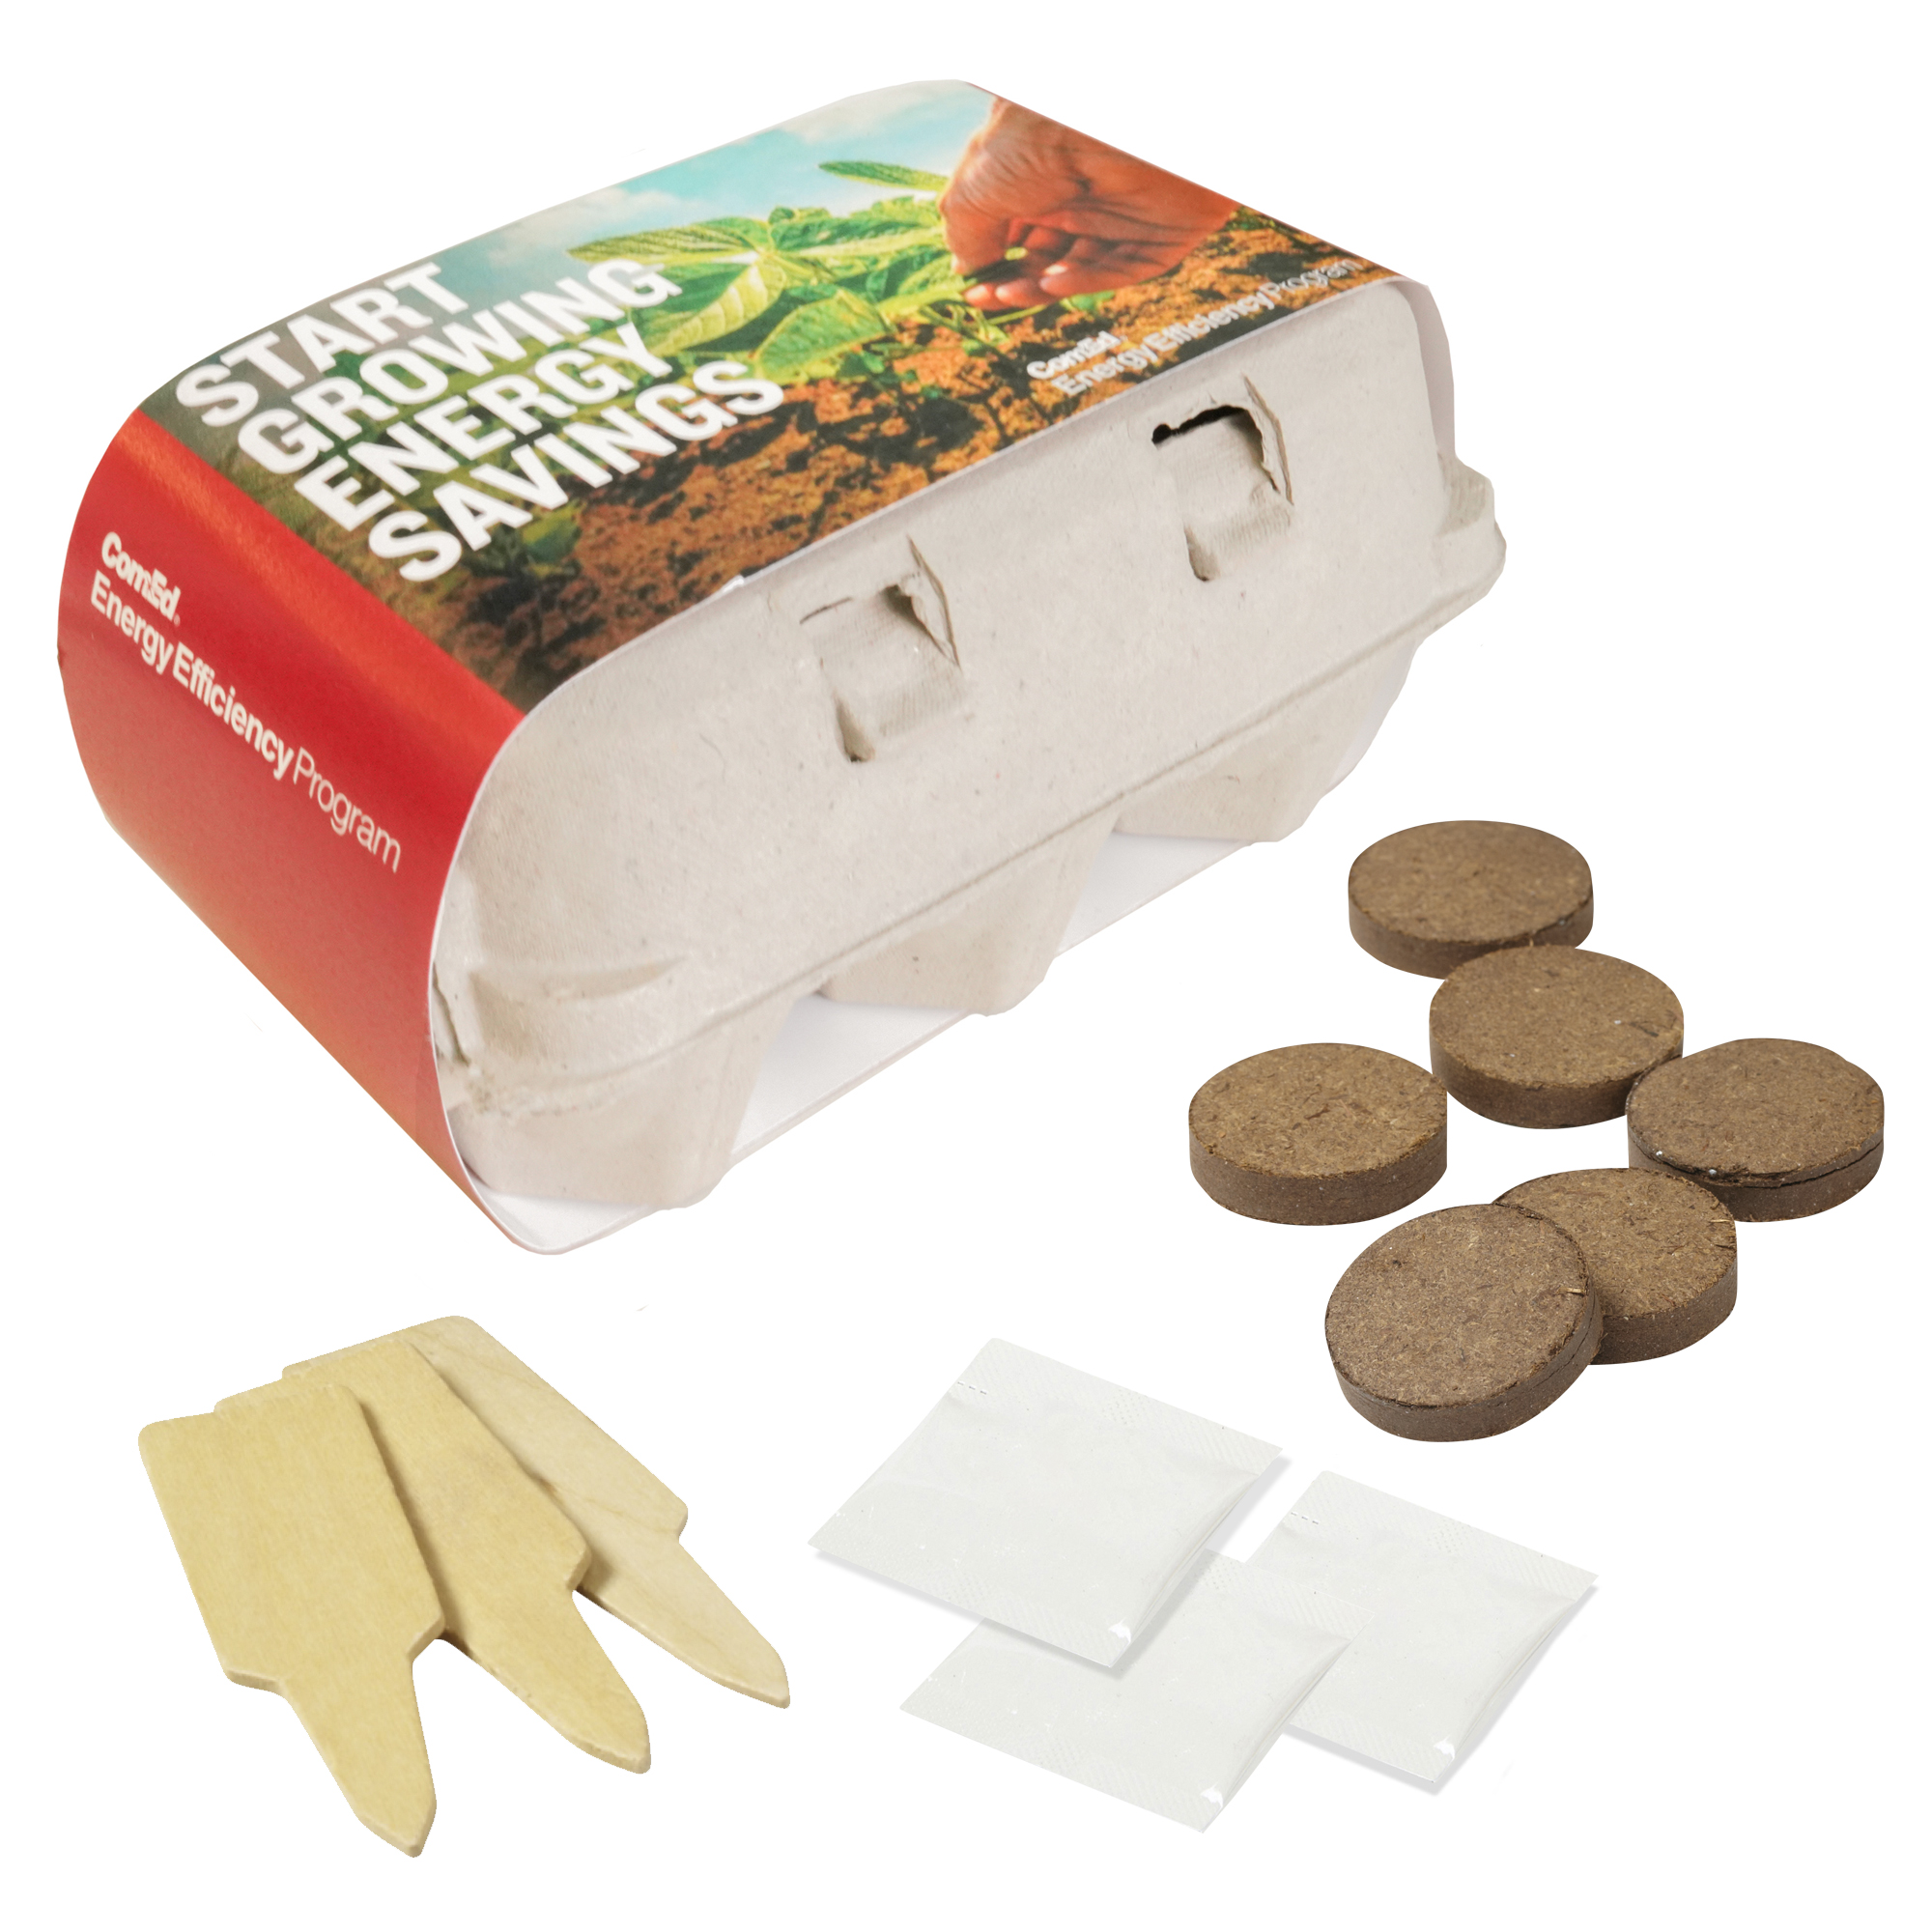 Create-Your-Own Garden Kit